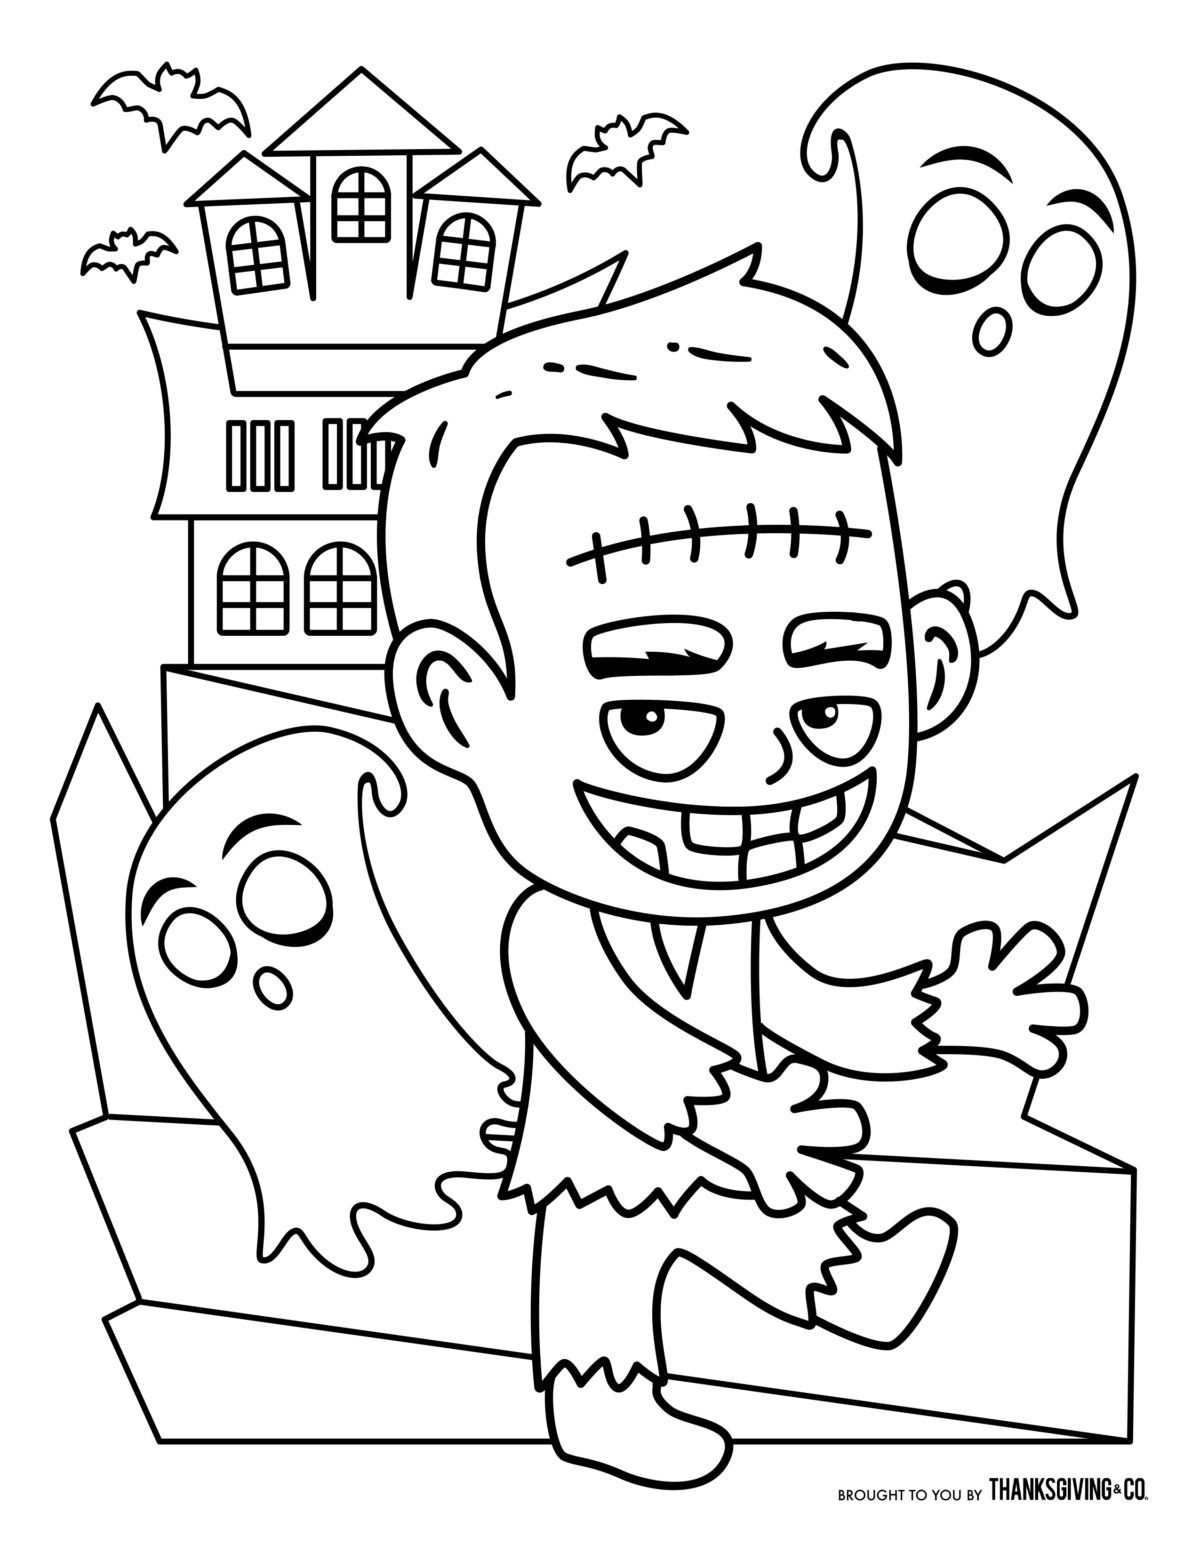 Free Halloween Coloring Pages For Kids Or For The Kid In You Free Halloween Coloring Pages Halloween Coloring Pages Printable Halloween Coloring Pages